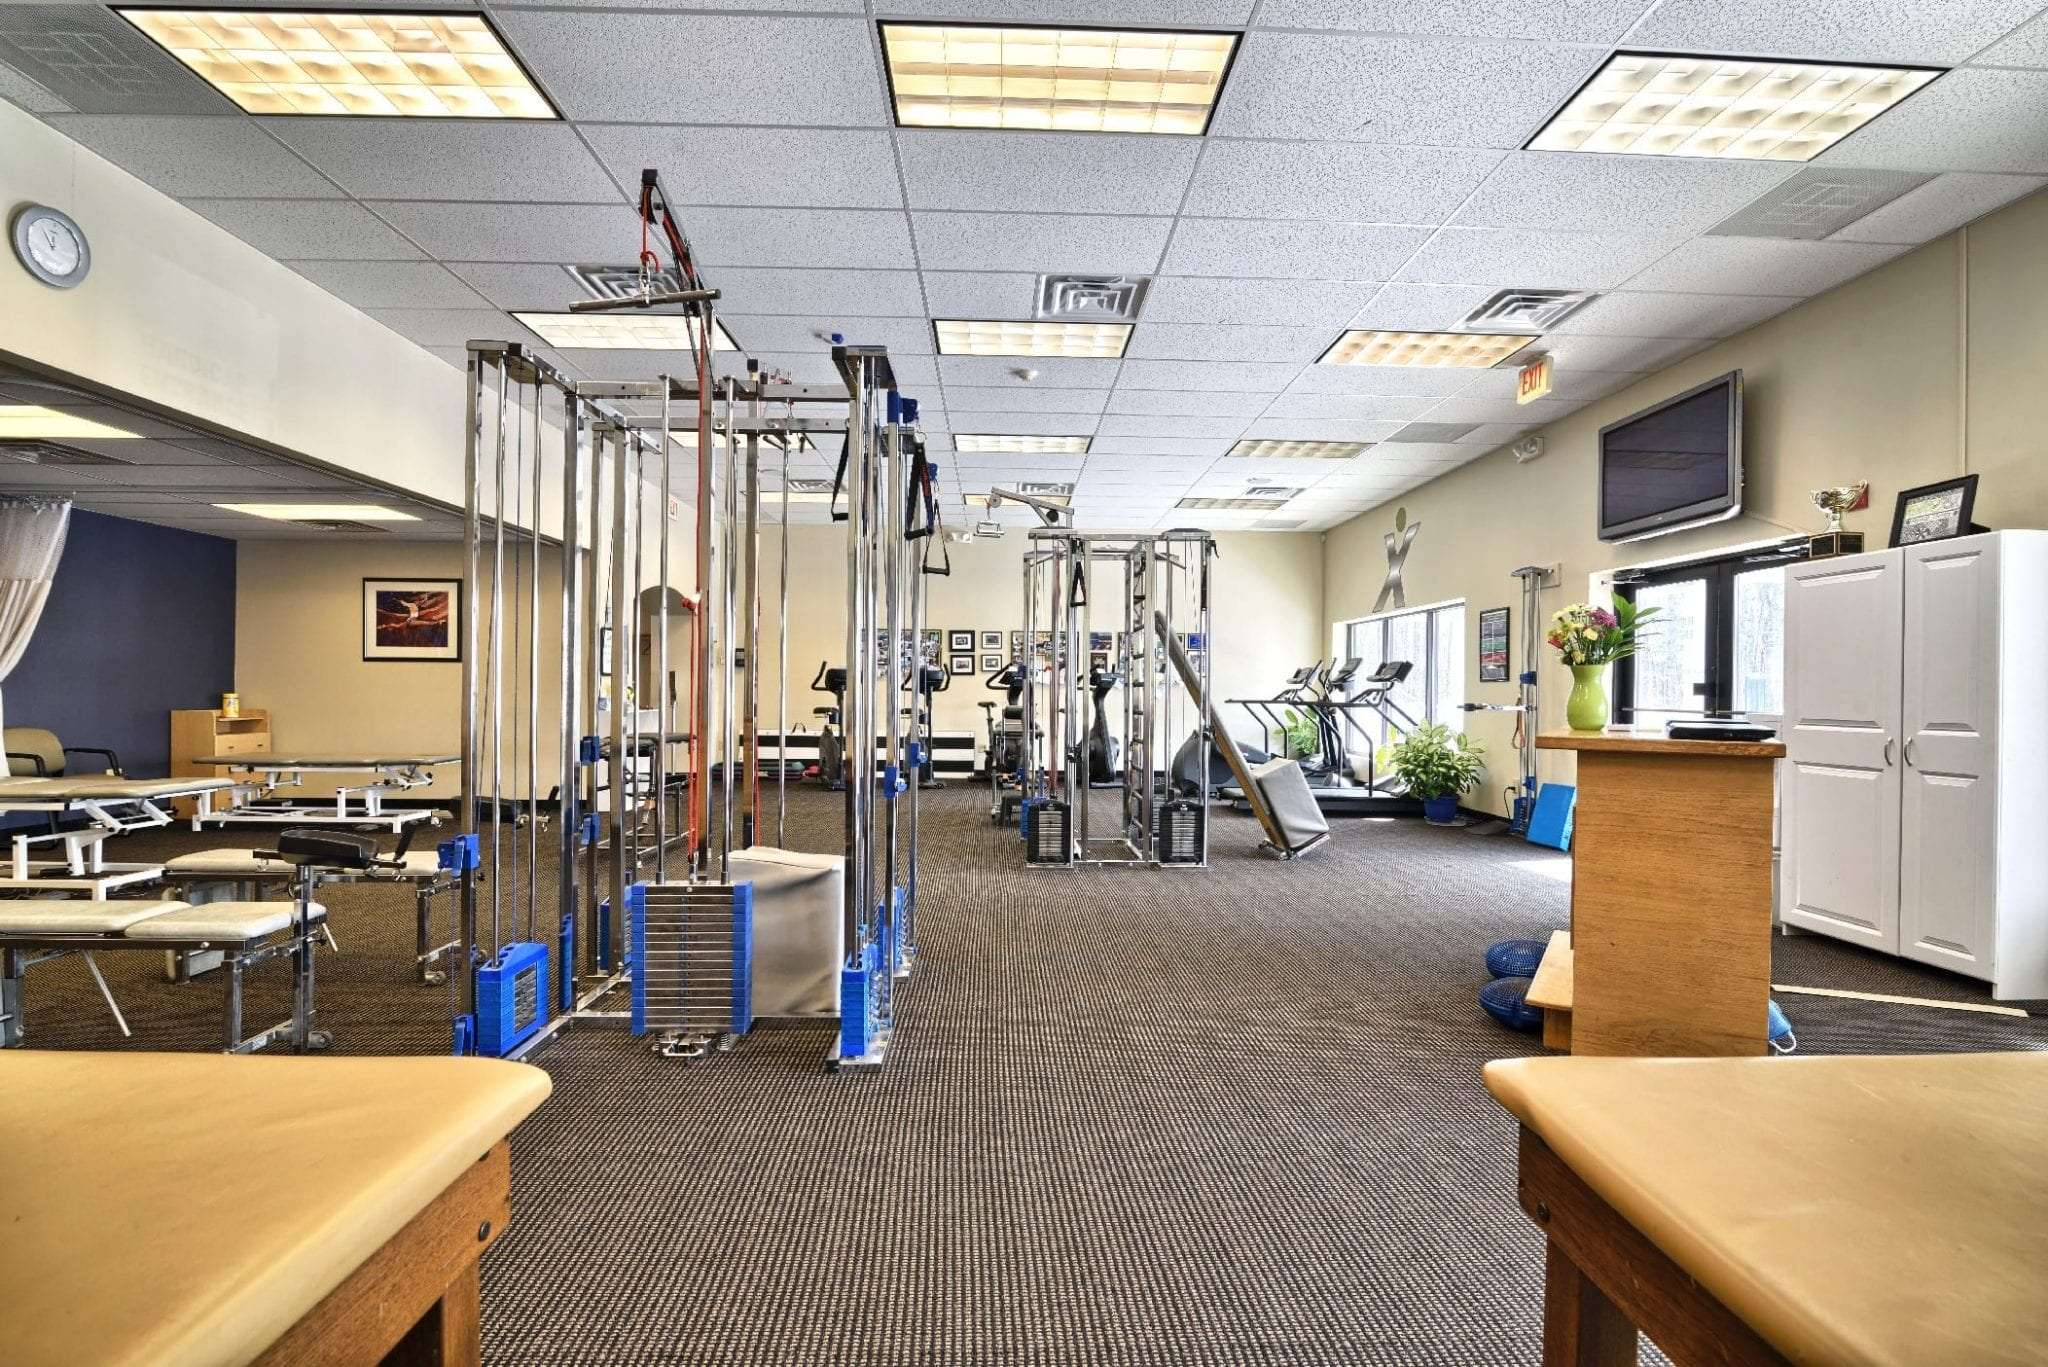 An interior shot of equipment used in physical therapy at our clinic in Stratham, New Hampshire.